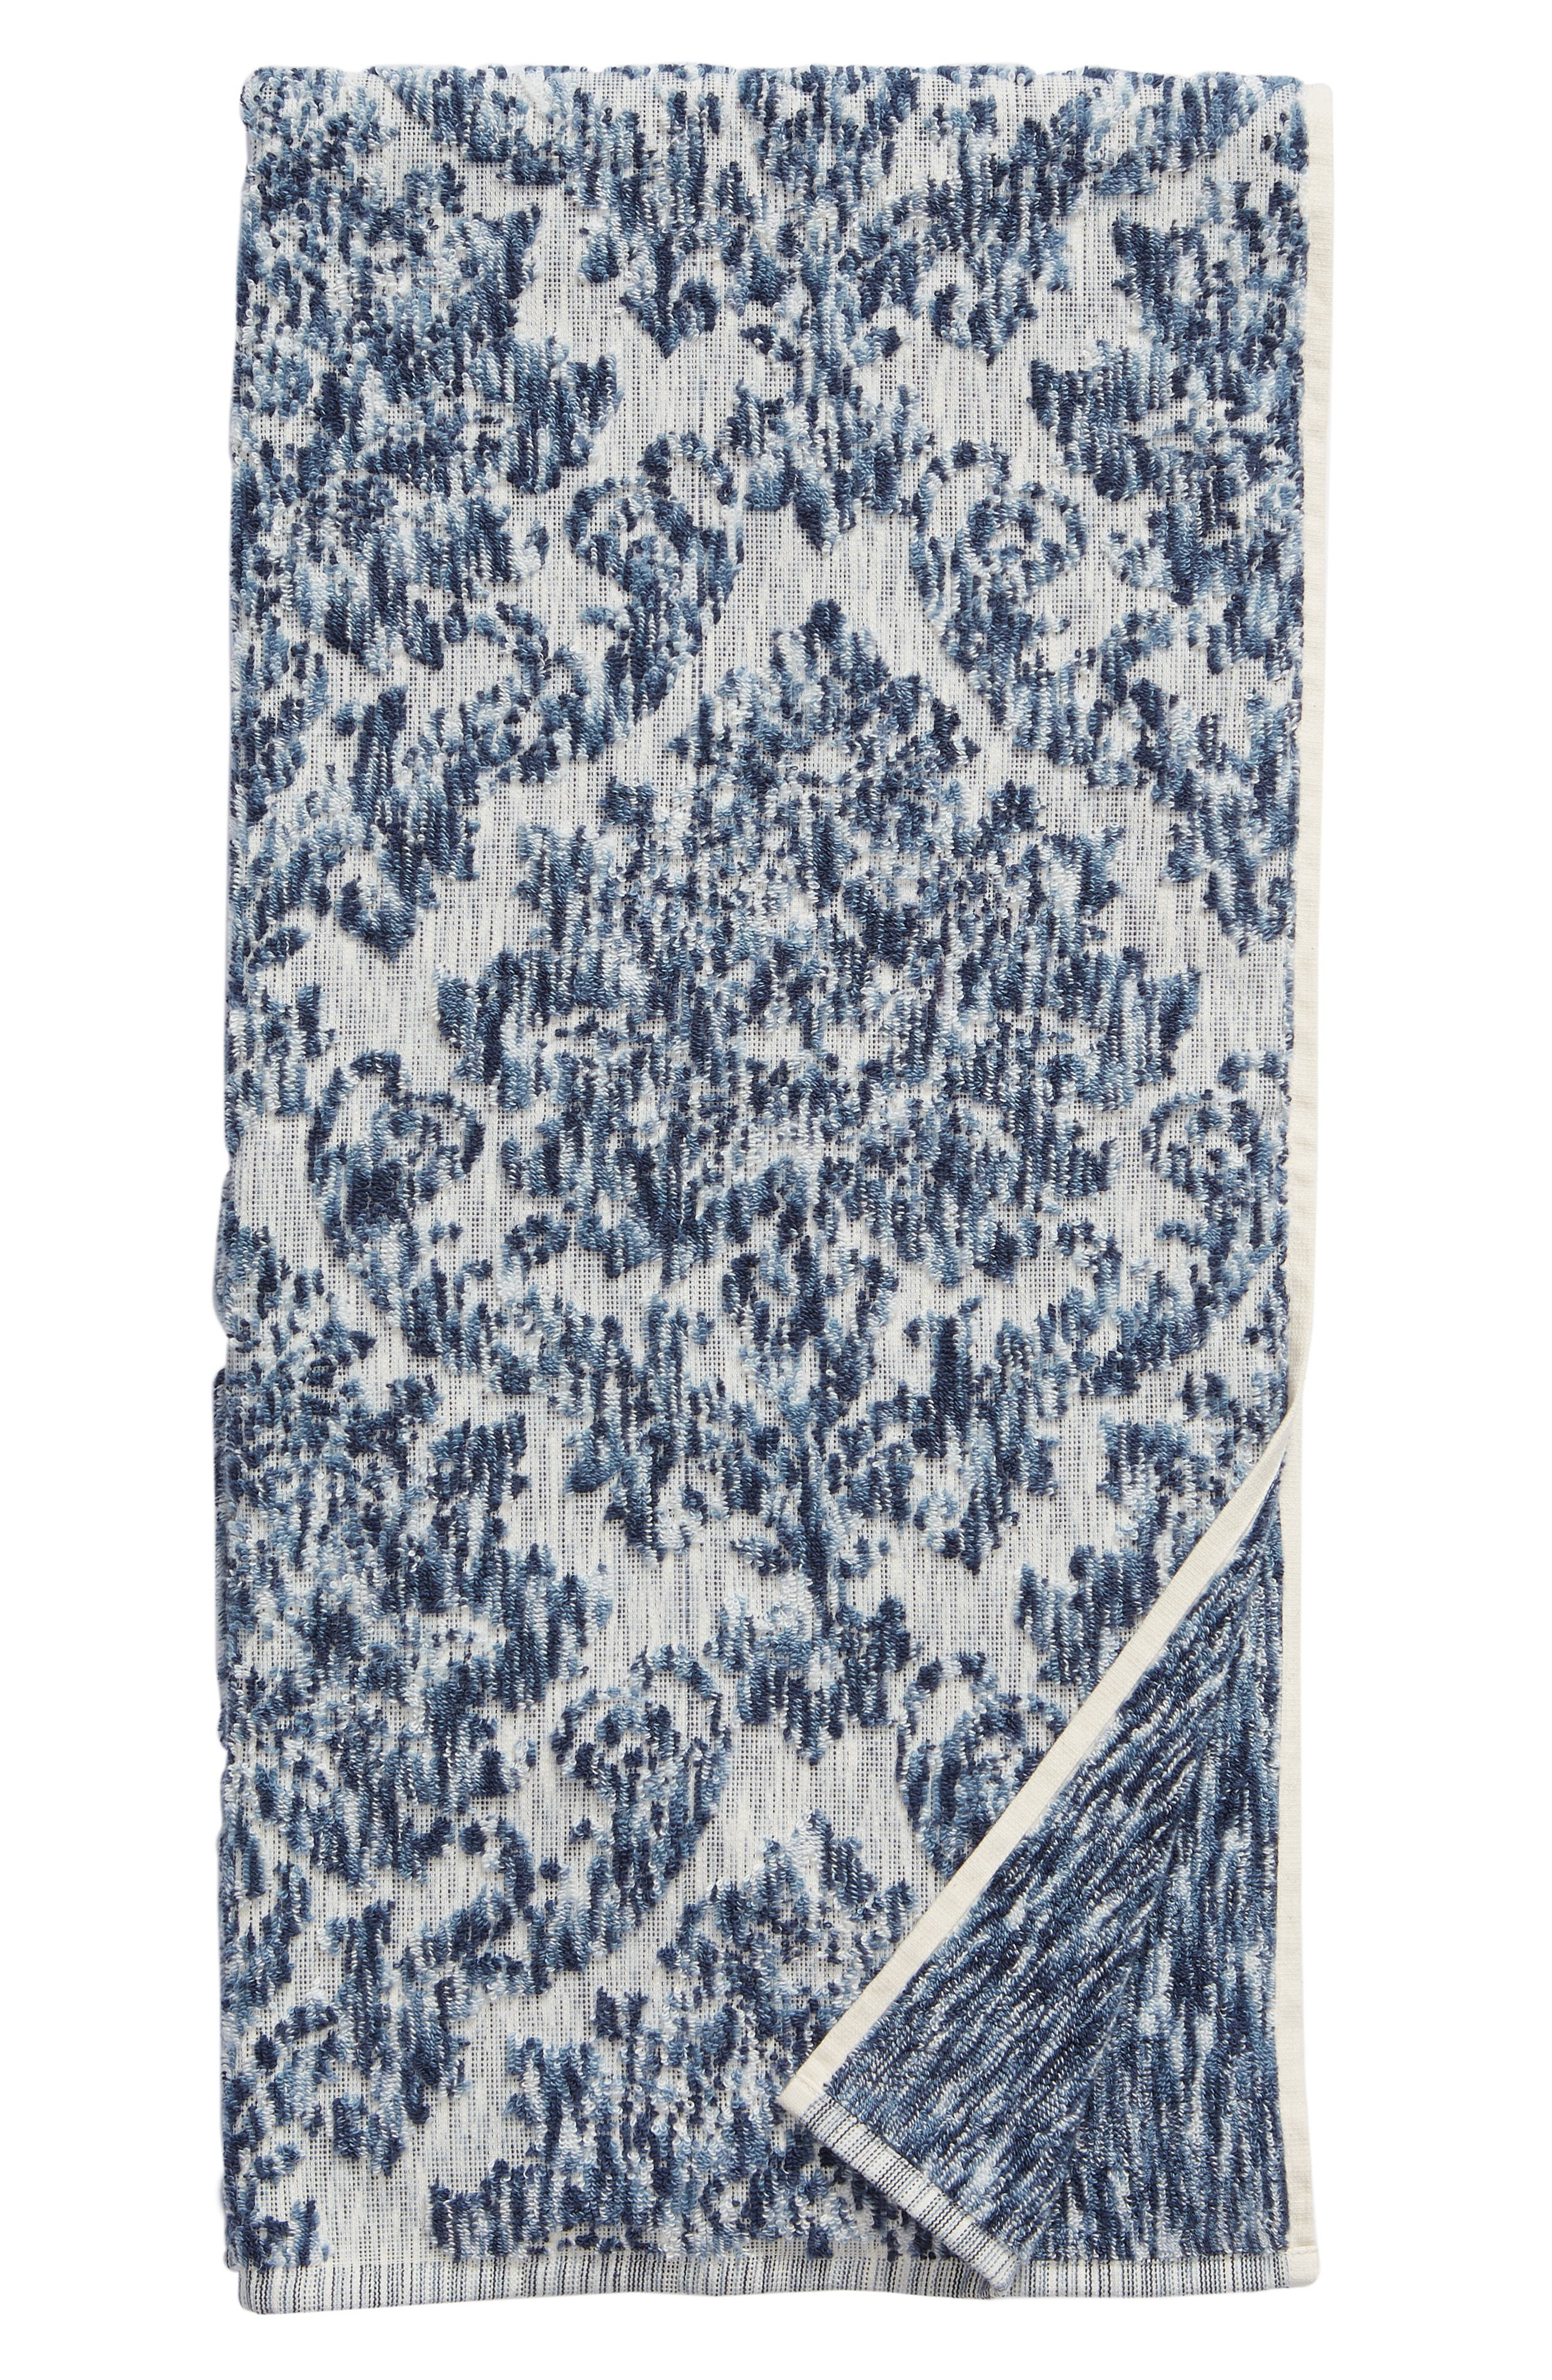 NORDSTROM AT HOME Easton Bath Towel, Main, color, BLUE CHAMBRAY MULTI